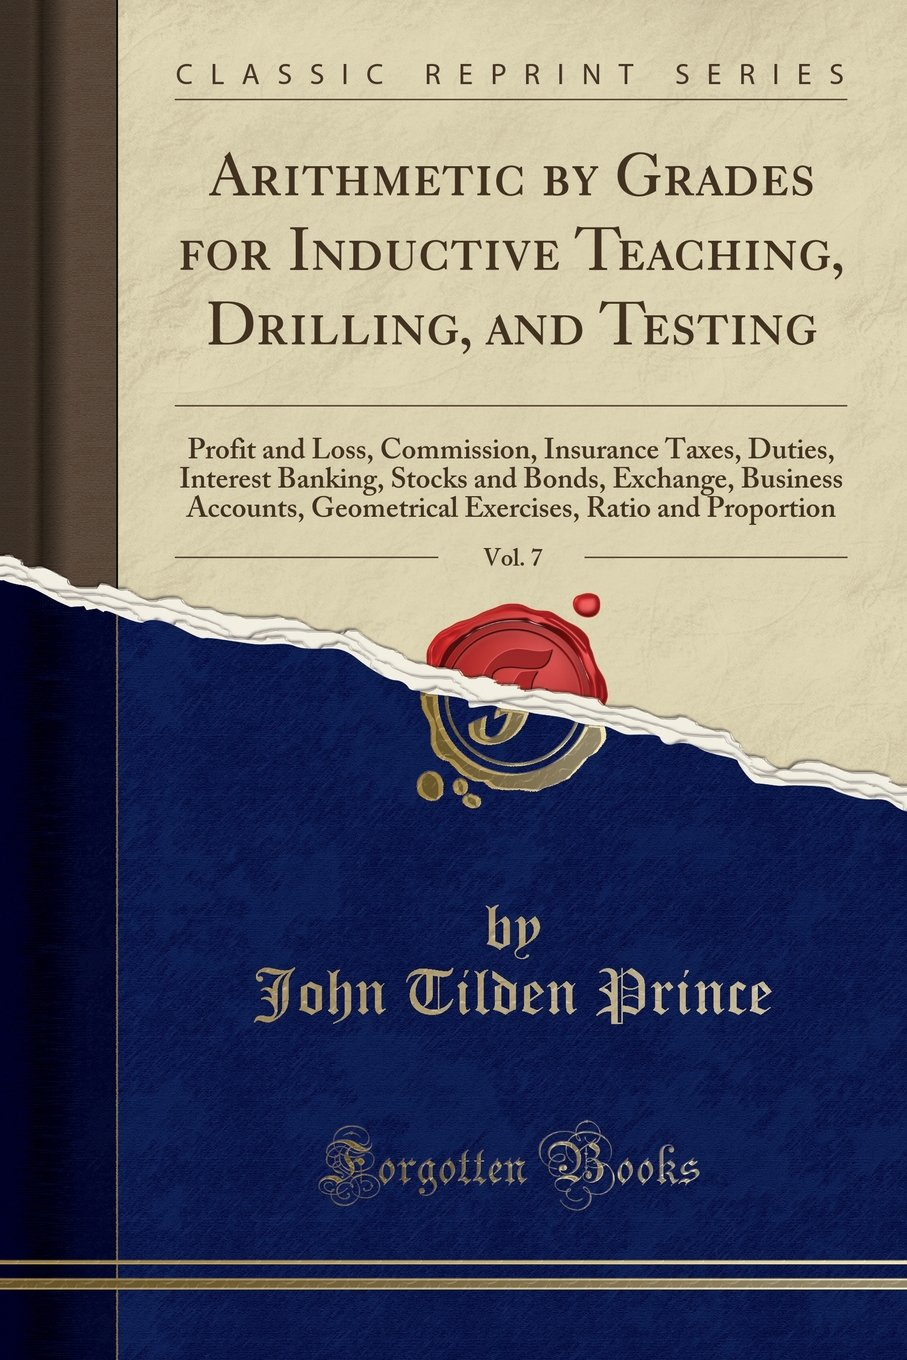 Download Arithmetic by Grades for Inductive Teaching, Drilling, and Testing, Vol. 7: Profit and Loss, Commission, Insurance Taxes, Duties, Interest Banking, ... Geometrical Exercises, Ratio and Proportion ebook